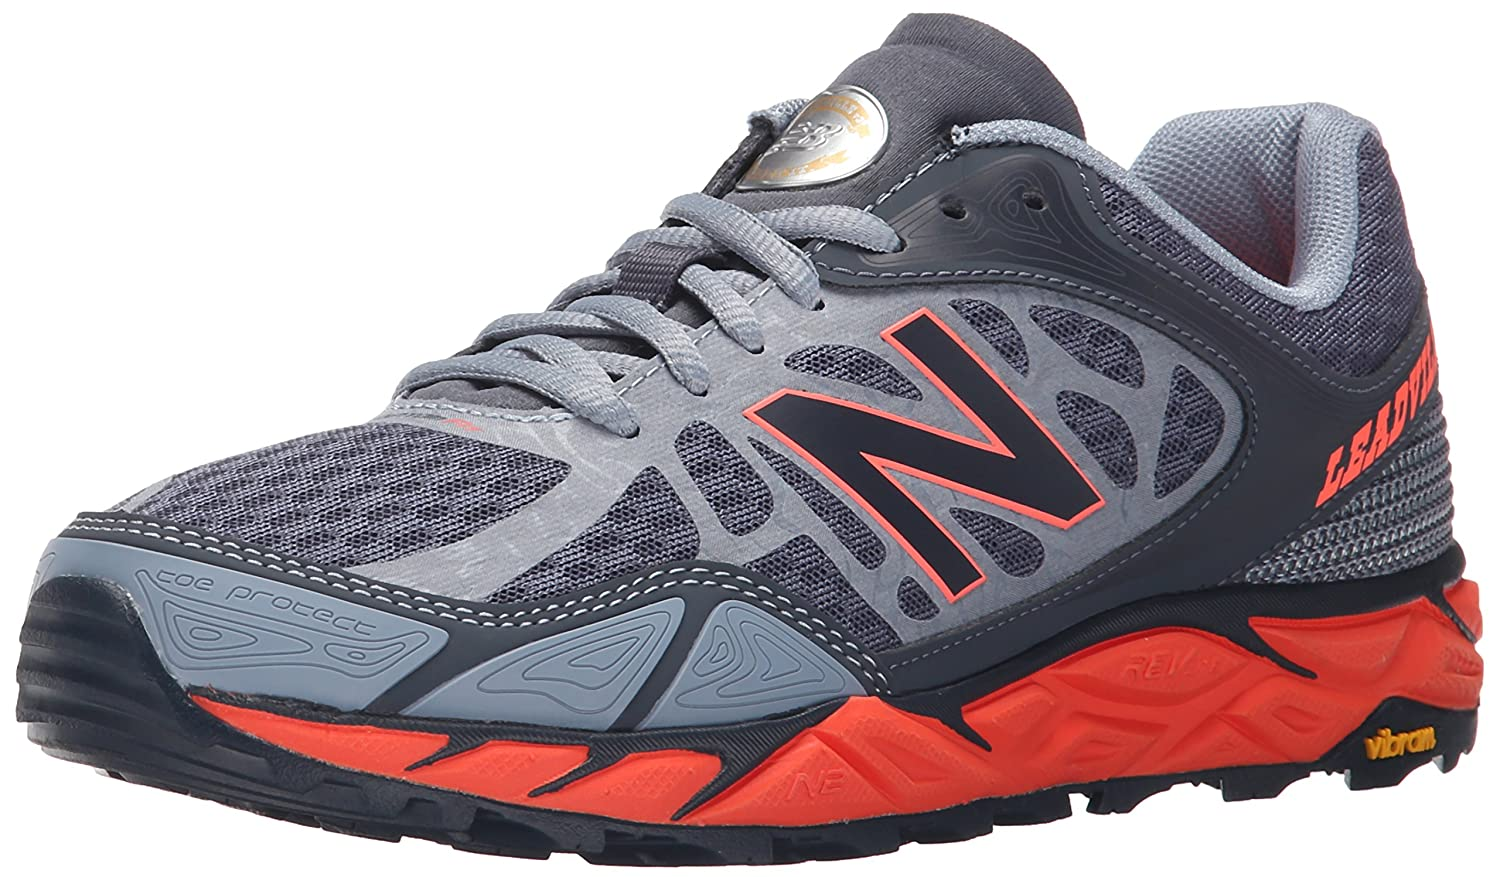 New Balance Women's Leadville V3 Trail Running Shoe B00Z7JILTG 5 D US|Grey/Orange